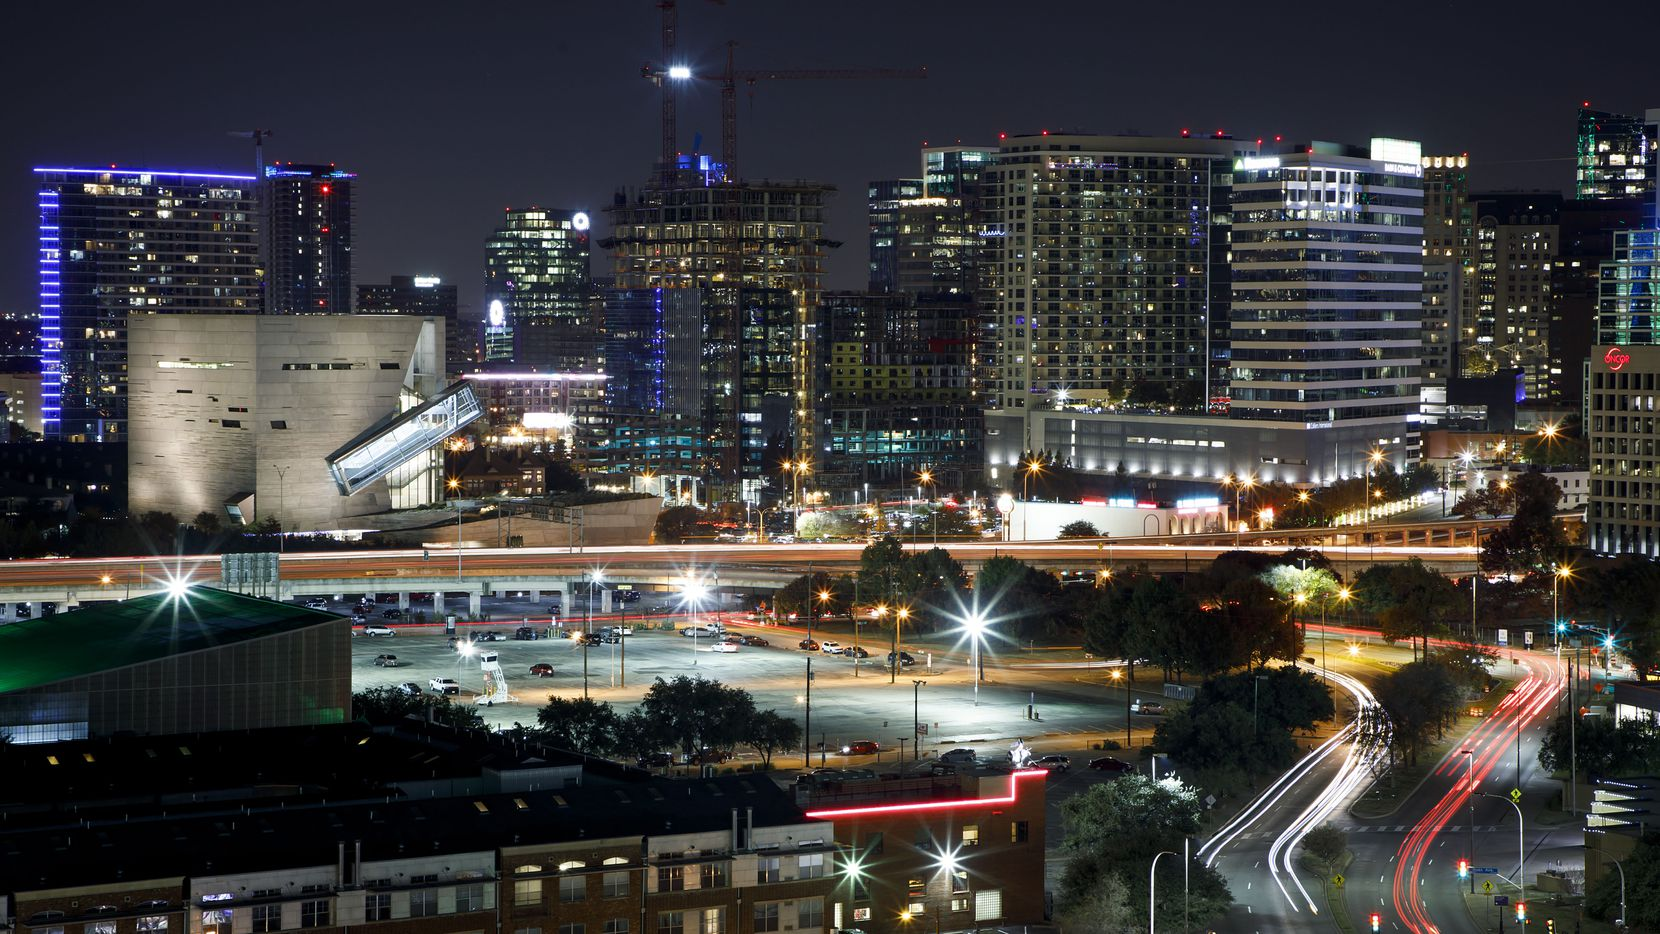 A nighttime view of Uptown (at right) and the Perot Museum (left) in Dallas on Saturday, Dec. 2, 2017. (Smiley N. Pool/The Dallas Morning News)